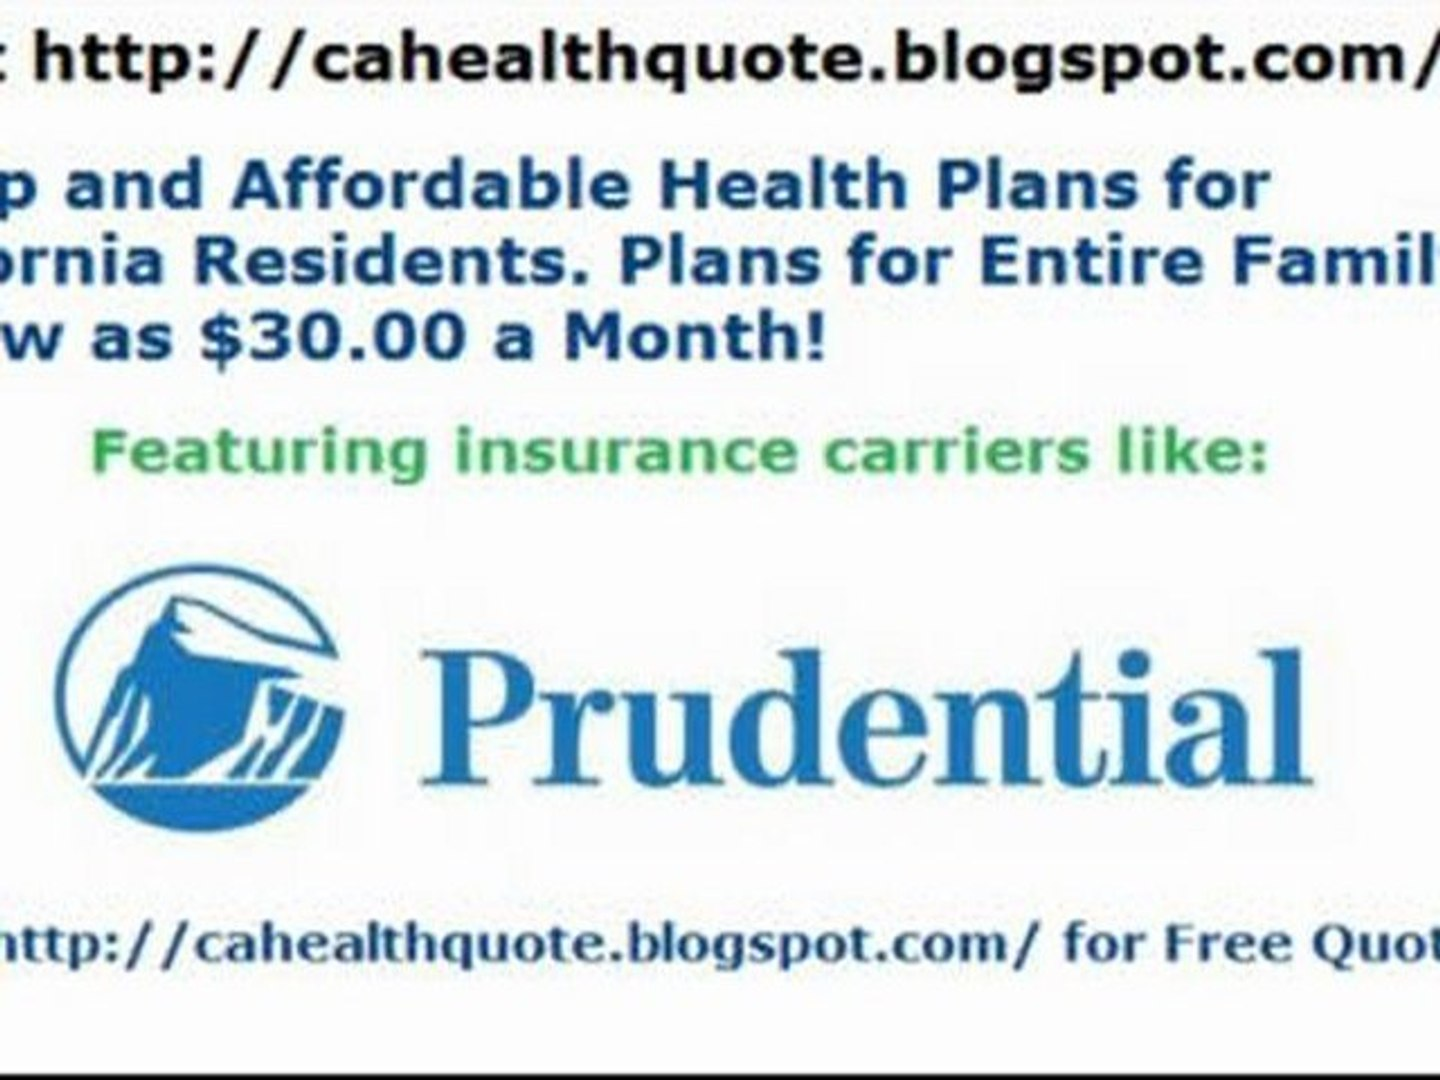 Affordable California Health Insurance - Lowest Cost Plans - Free Quotes